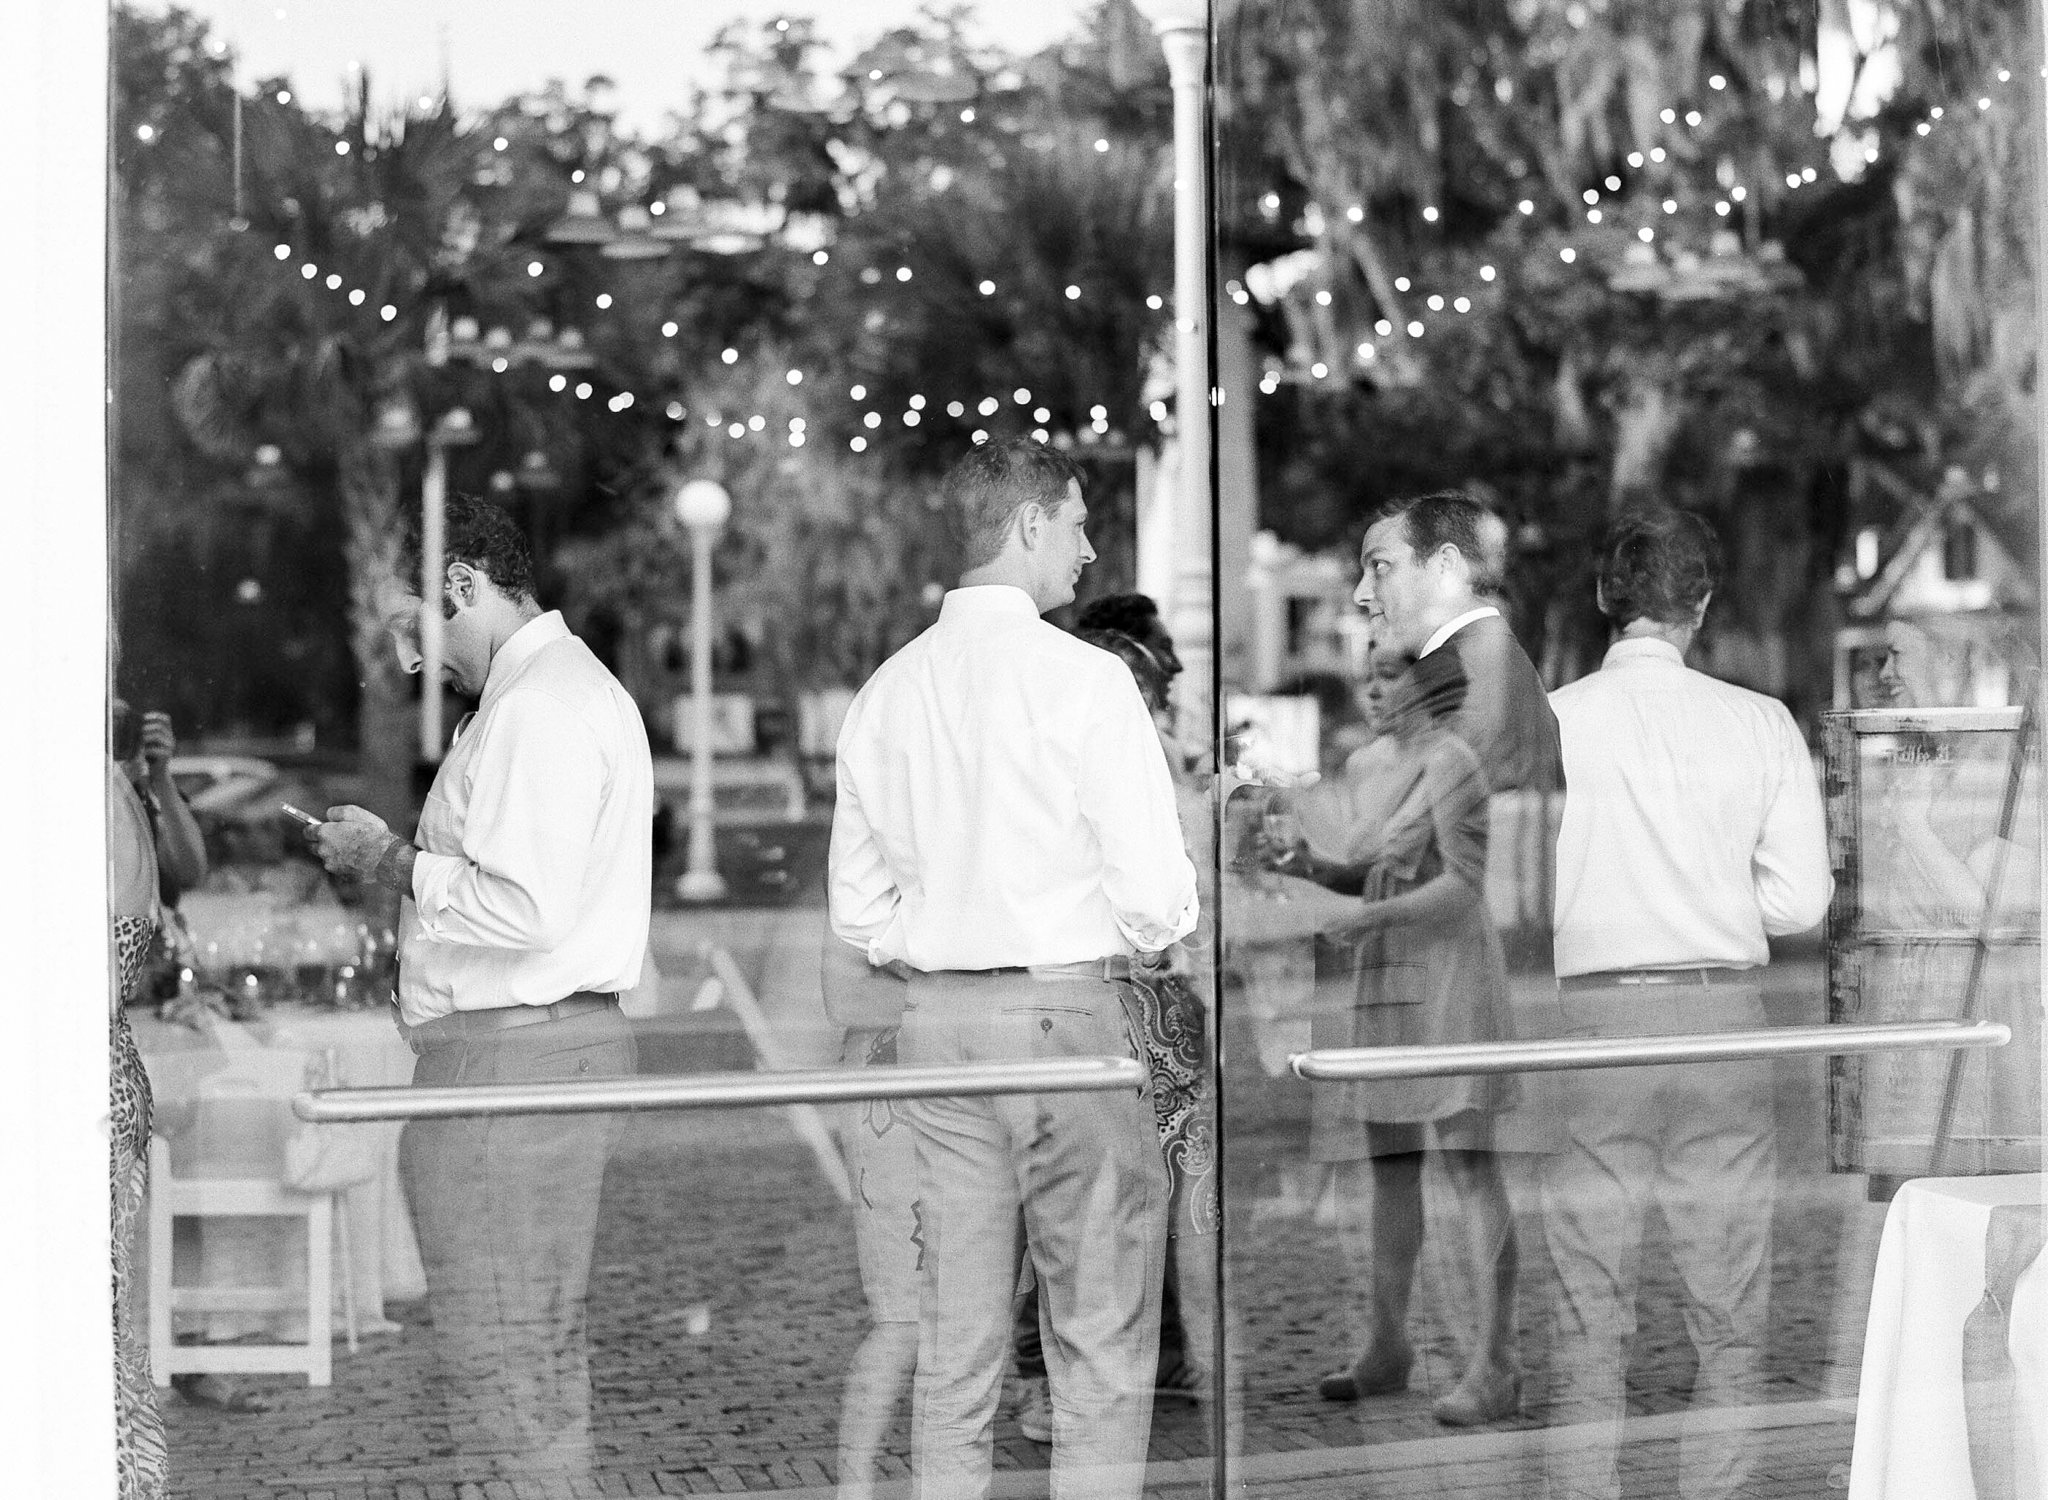 Persian-Jewish wedding goodwood wedding photographer tallahassee florida shannon griffin photography_0020.jpg